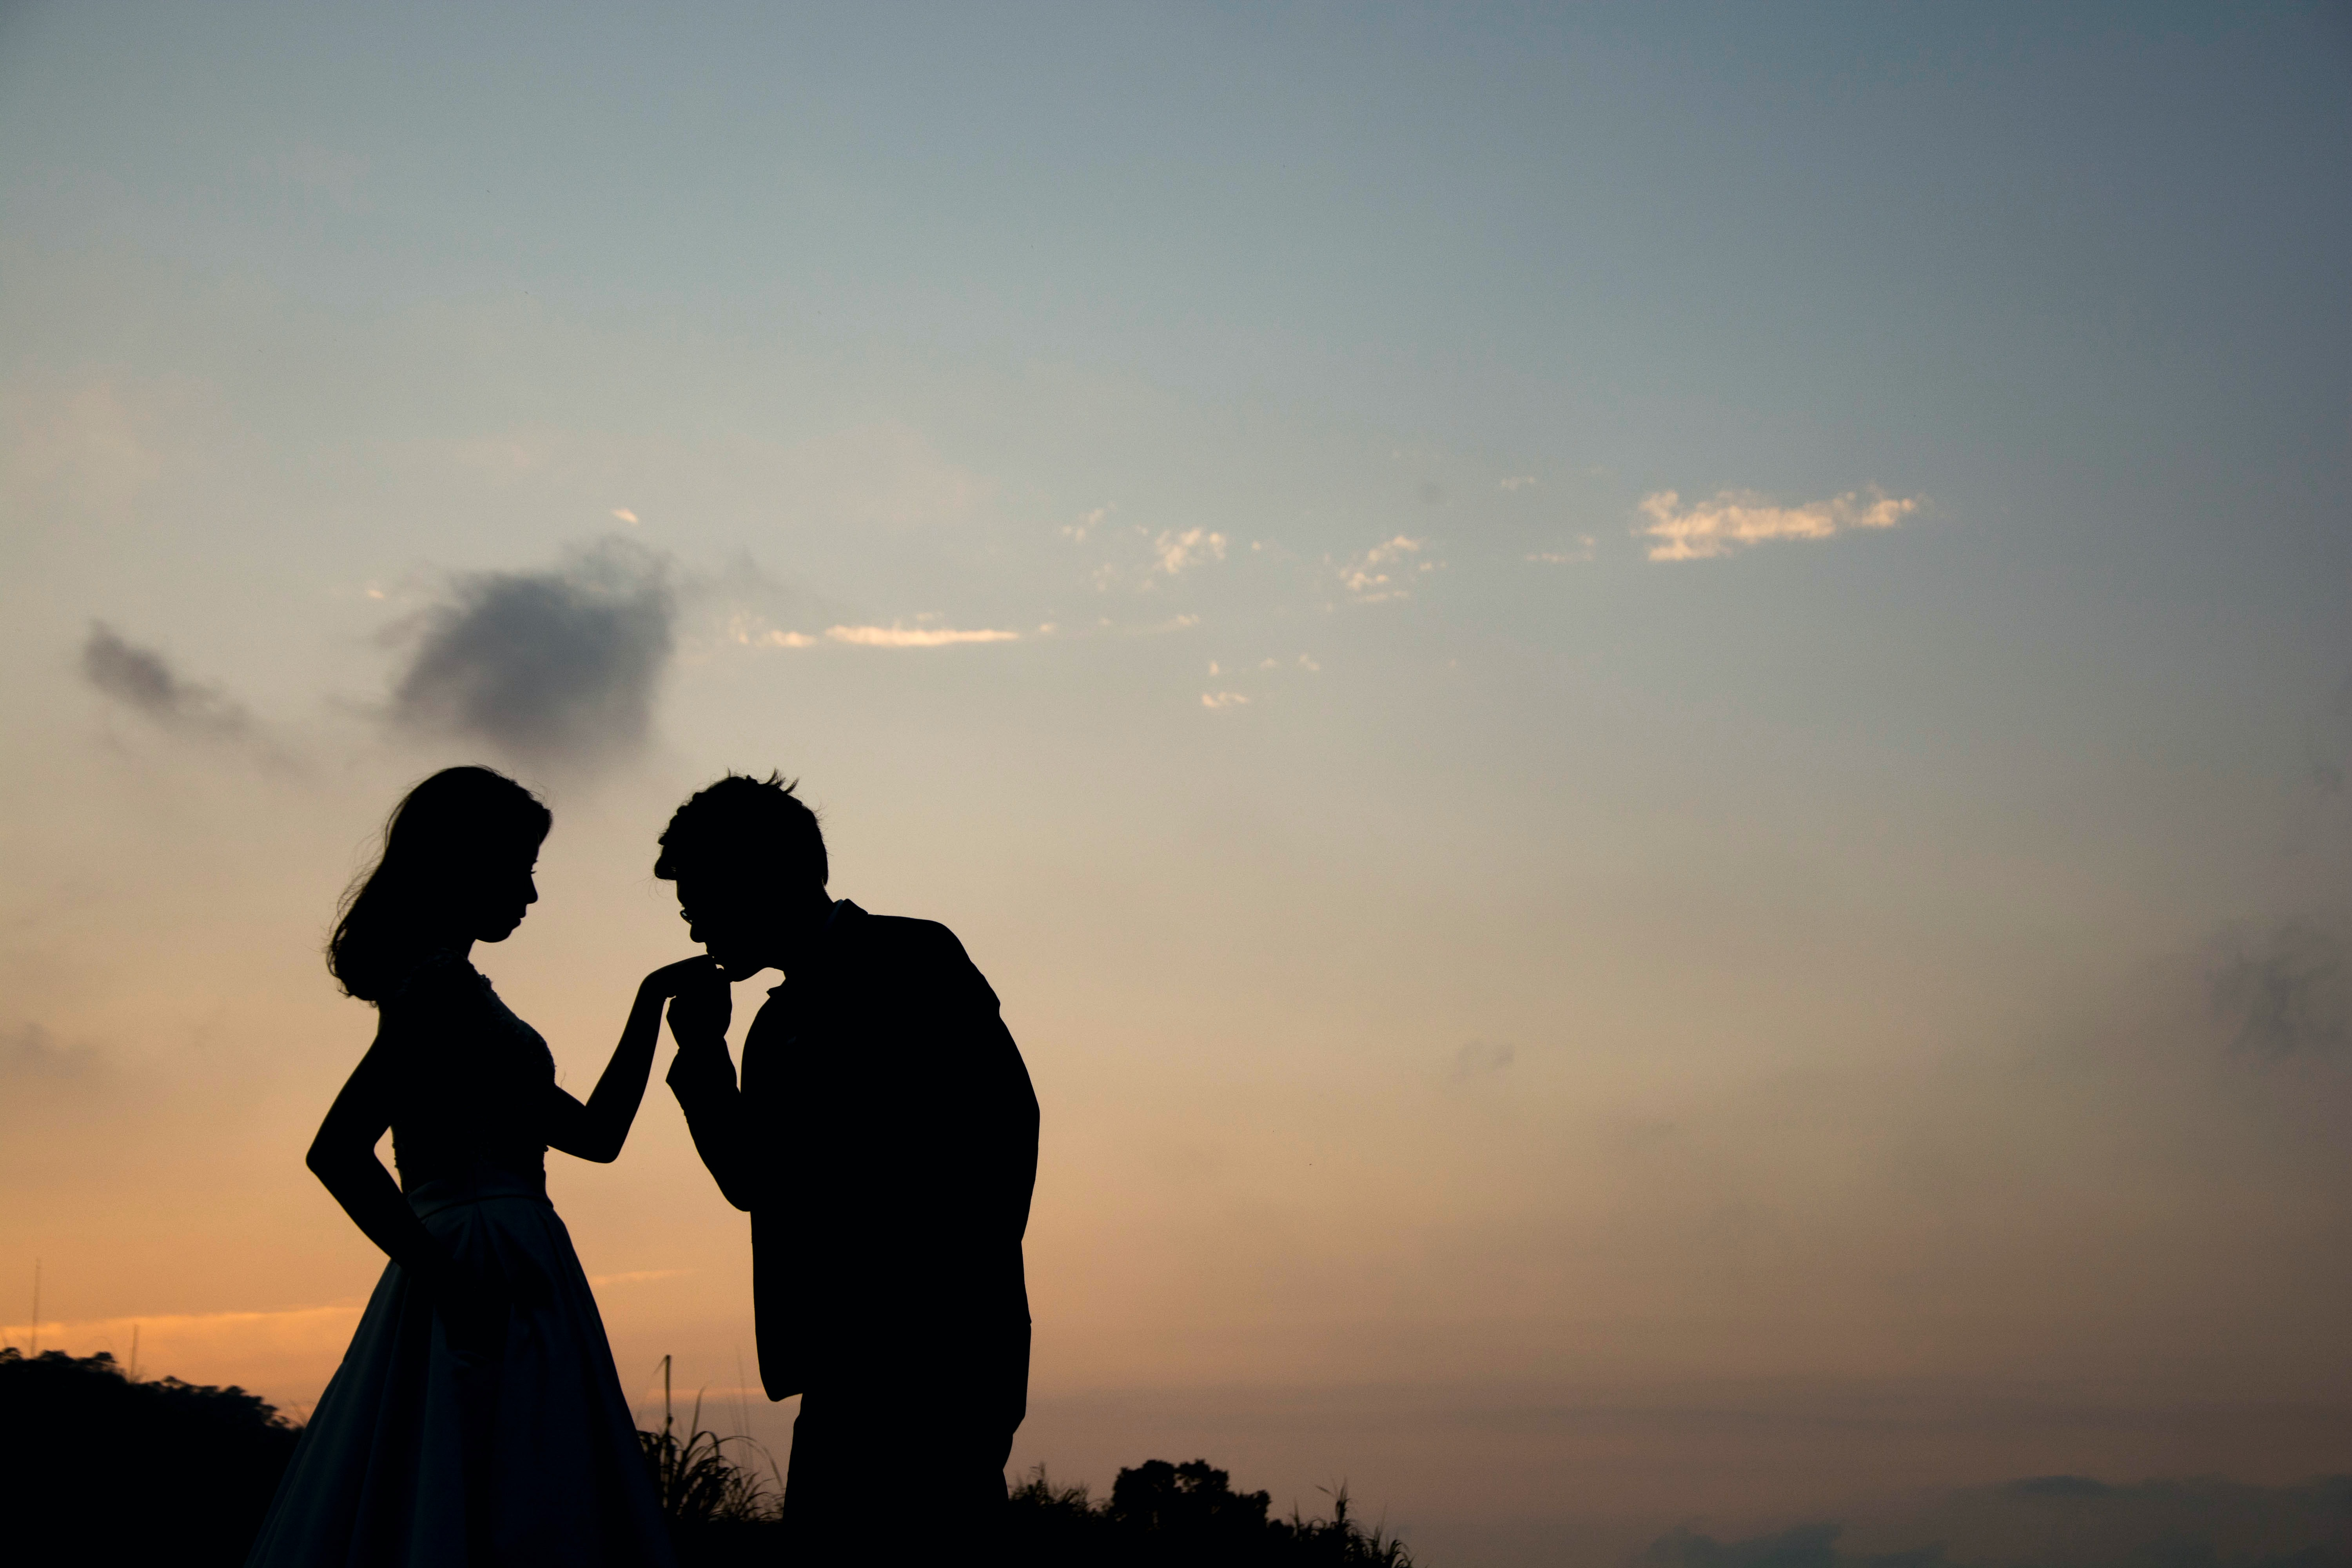 Darkened silhouetted of two young individuals, one with a feminine form and the other with no binary traits, against a sunset backdrop. The second individual has the feminine person's hand in theirs; the hand is raised to their lips, as if to signify a kiss.